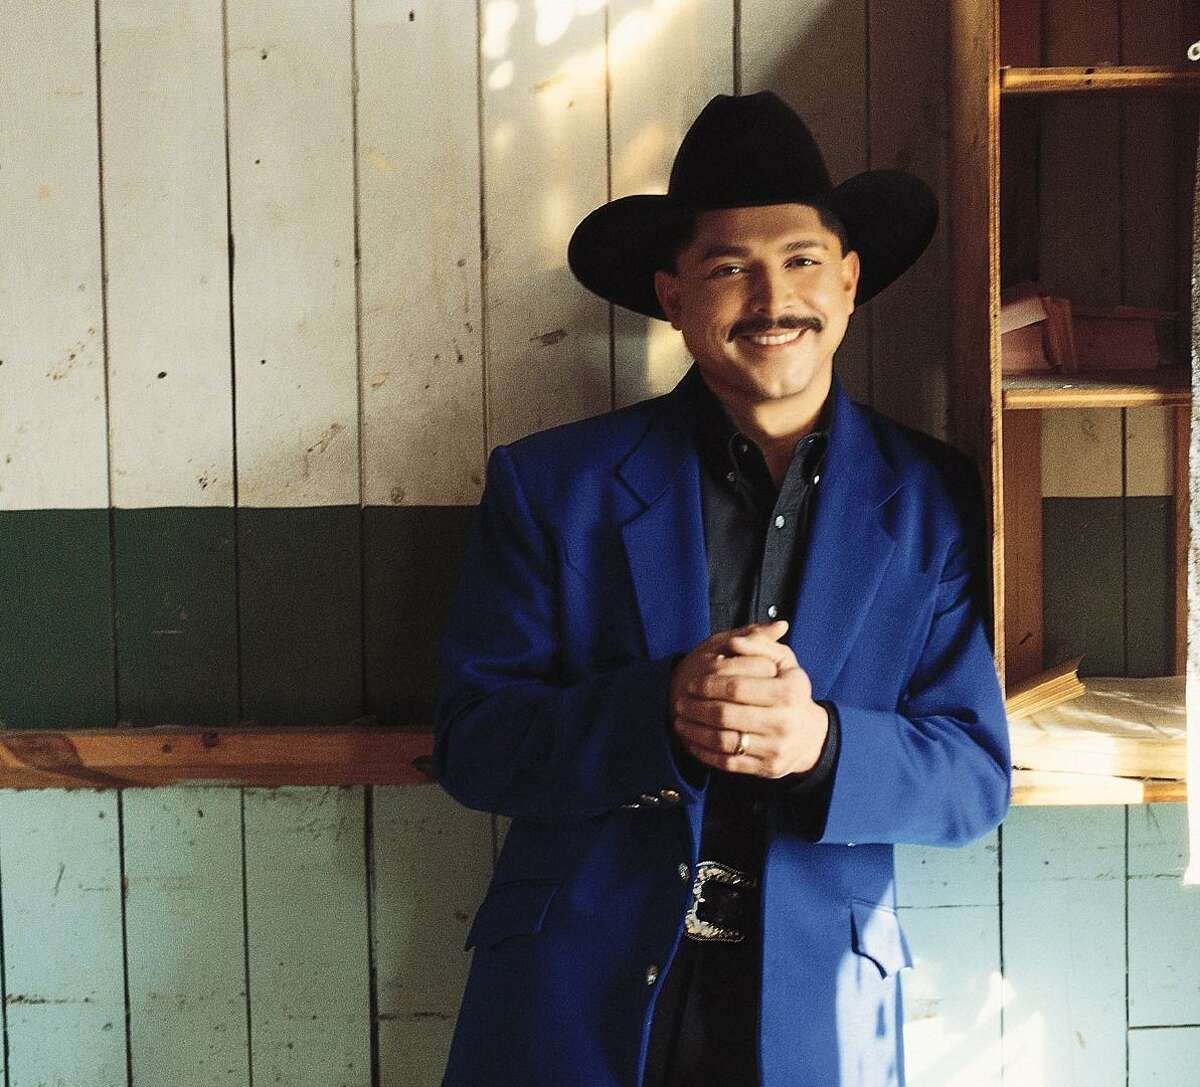 Emilio Navaira, who died in 2016, was considered the King of Tejano opposite Selena.